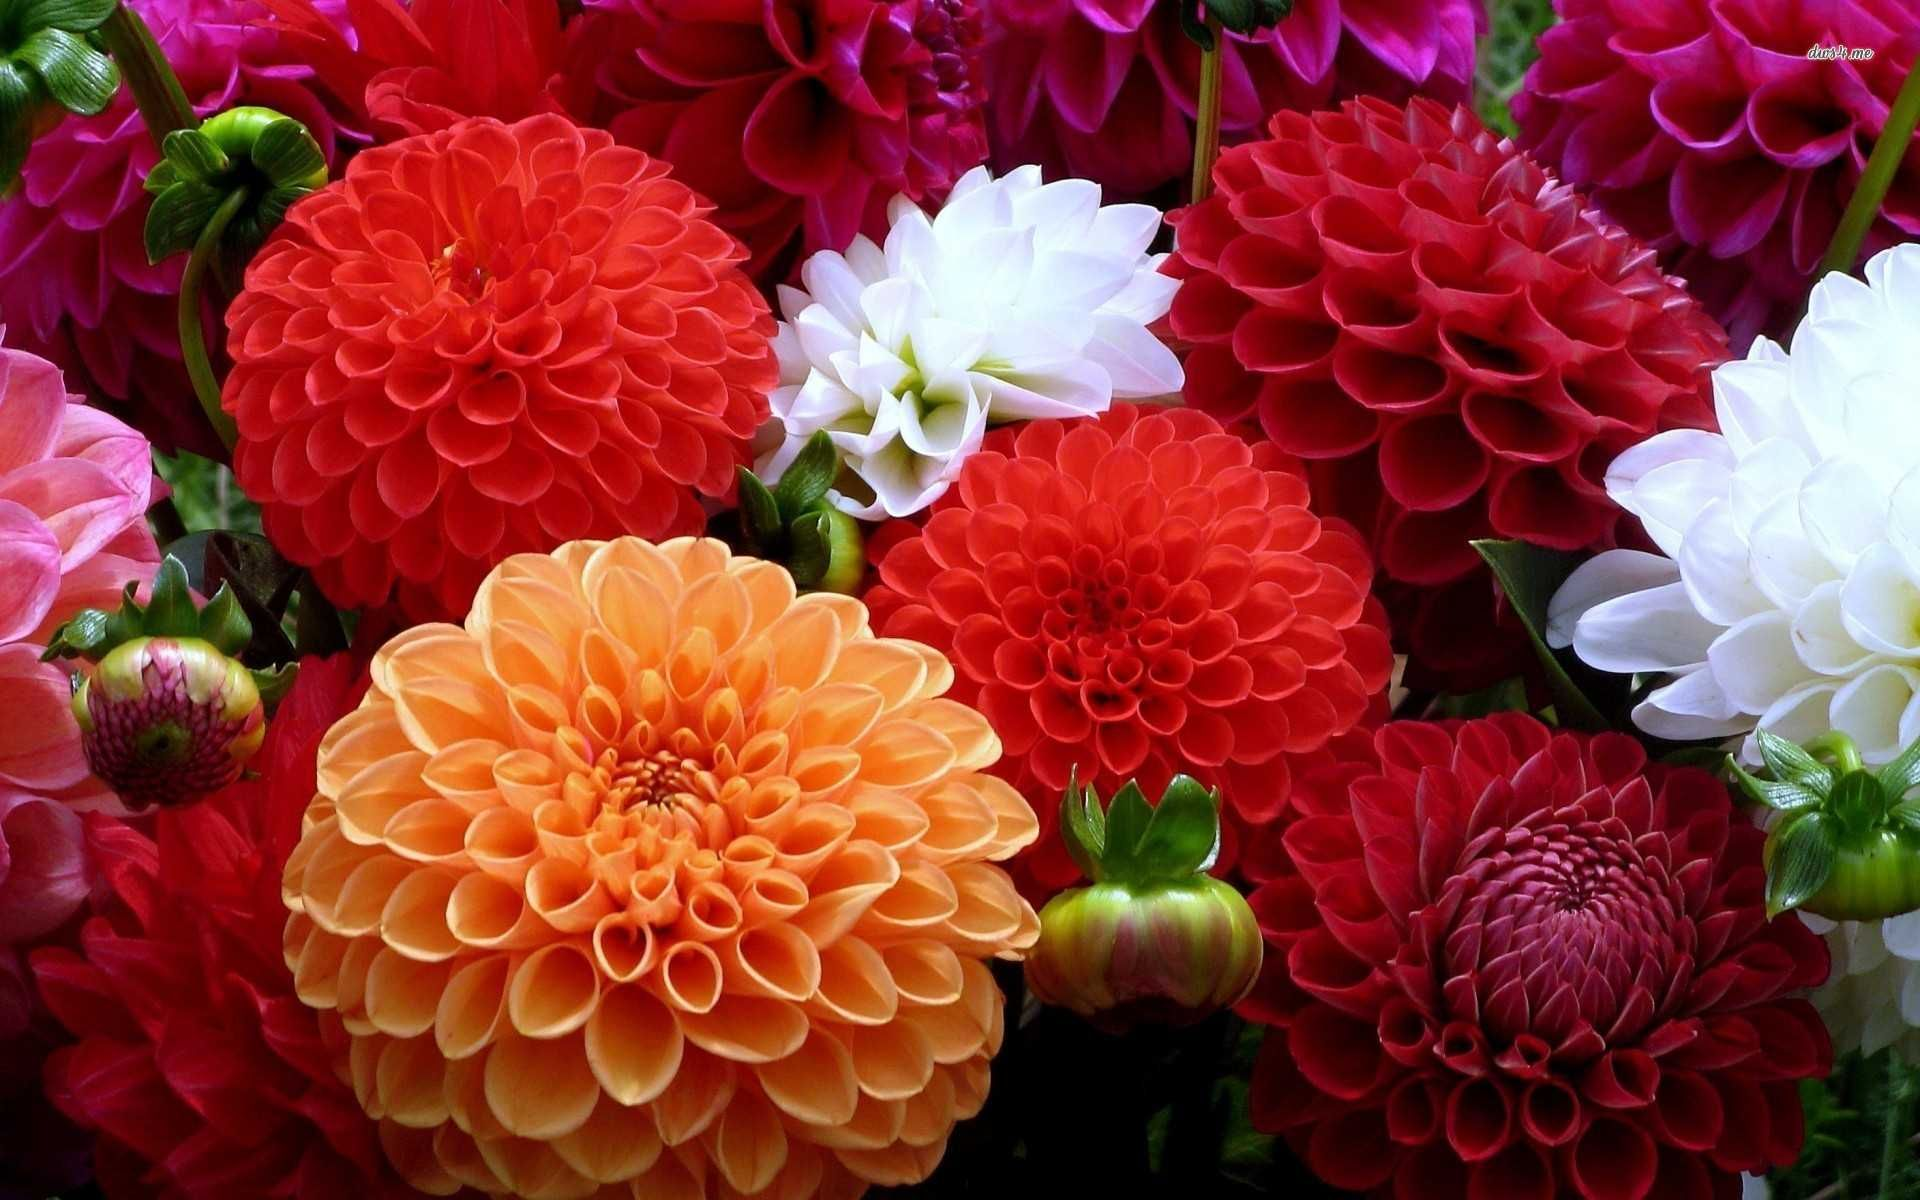 Beautiful Dahlia Flower Wallpaper Google Search Garden HD Wallpapers Download Free Images Wallpaper [1000image.com]